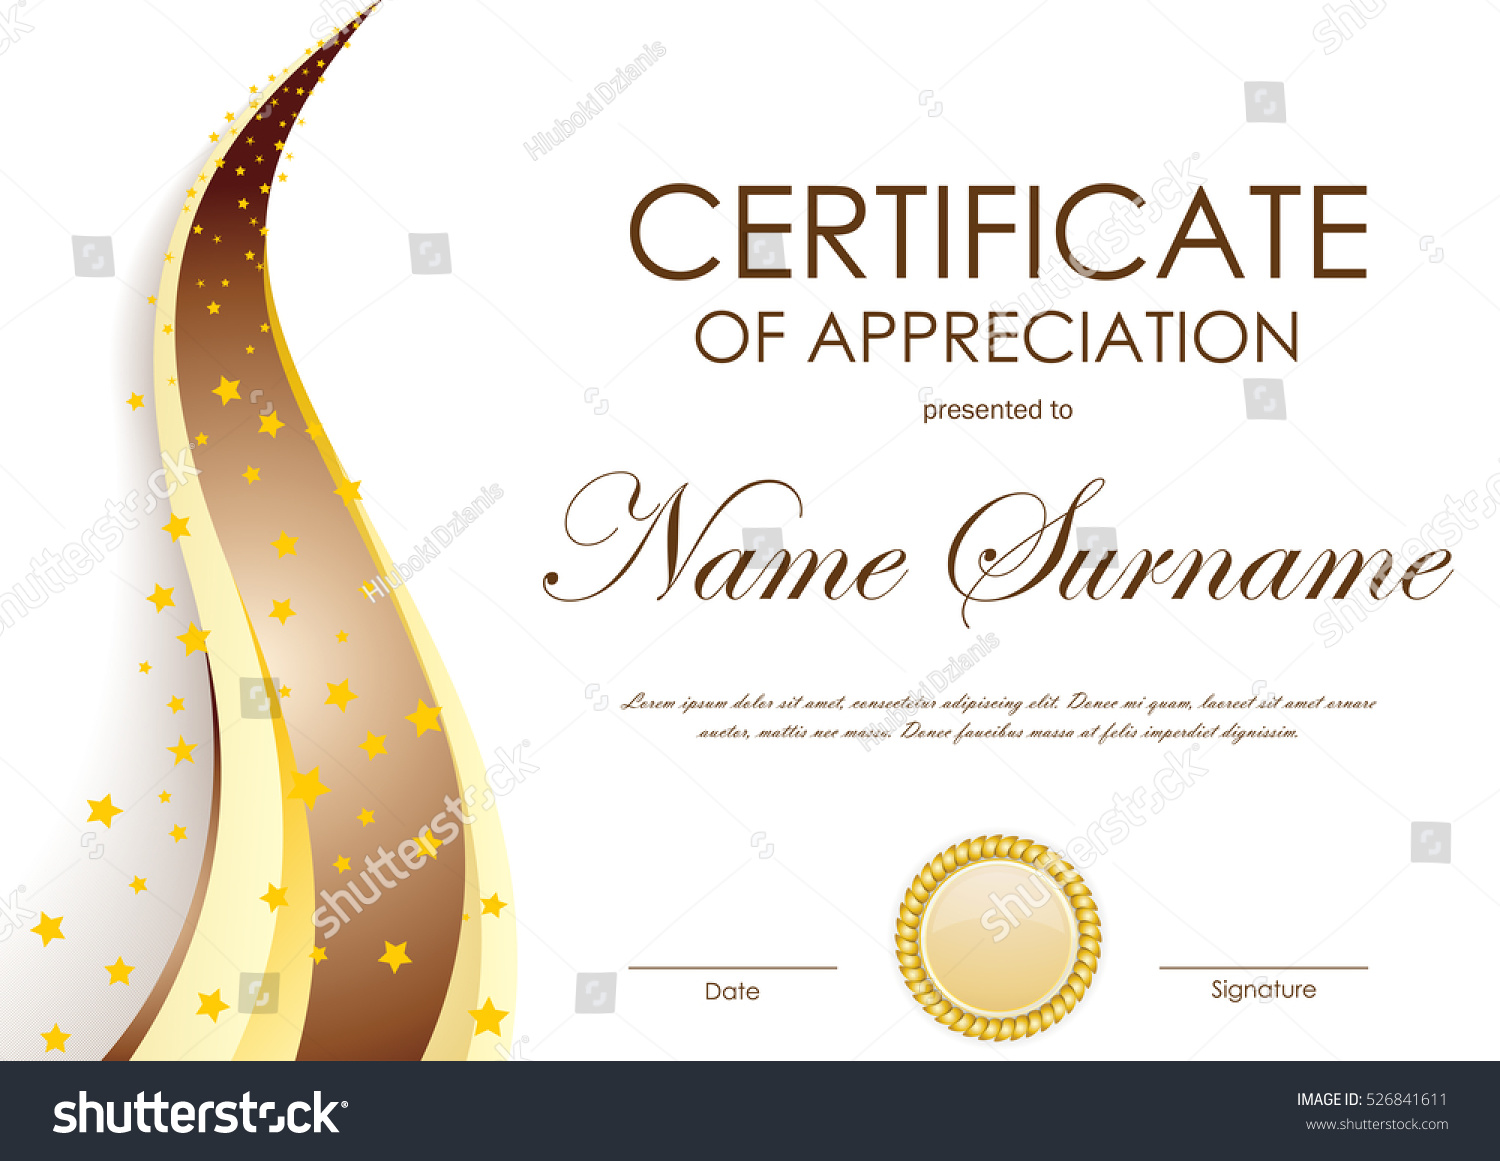 certificate of appreciation template with gold and brown wavy background and seal vector illustration